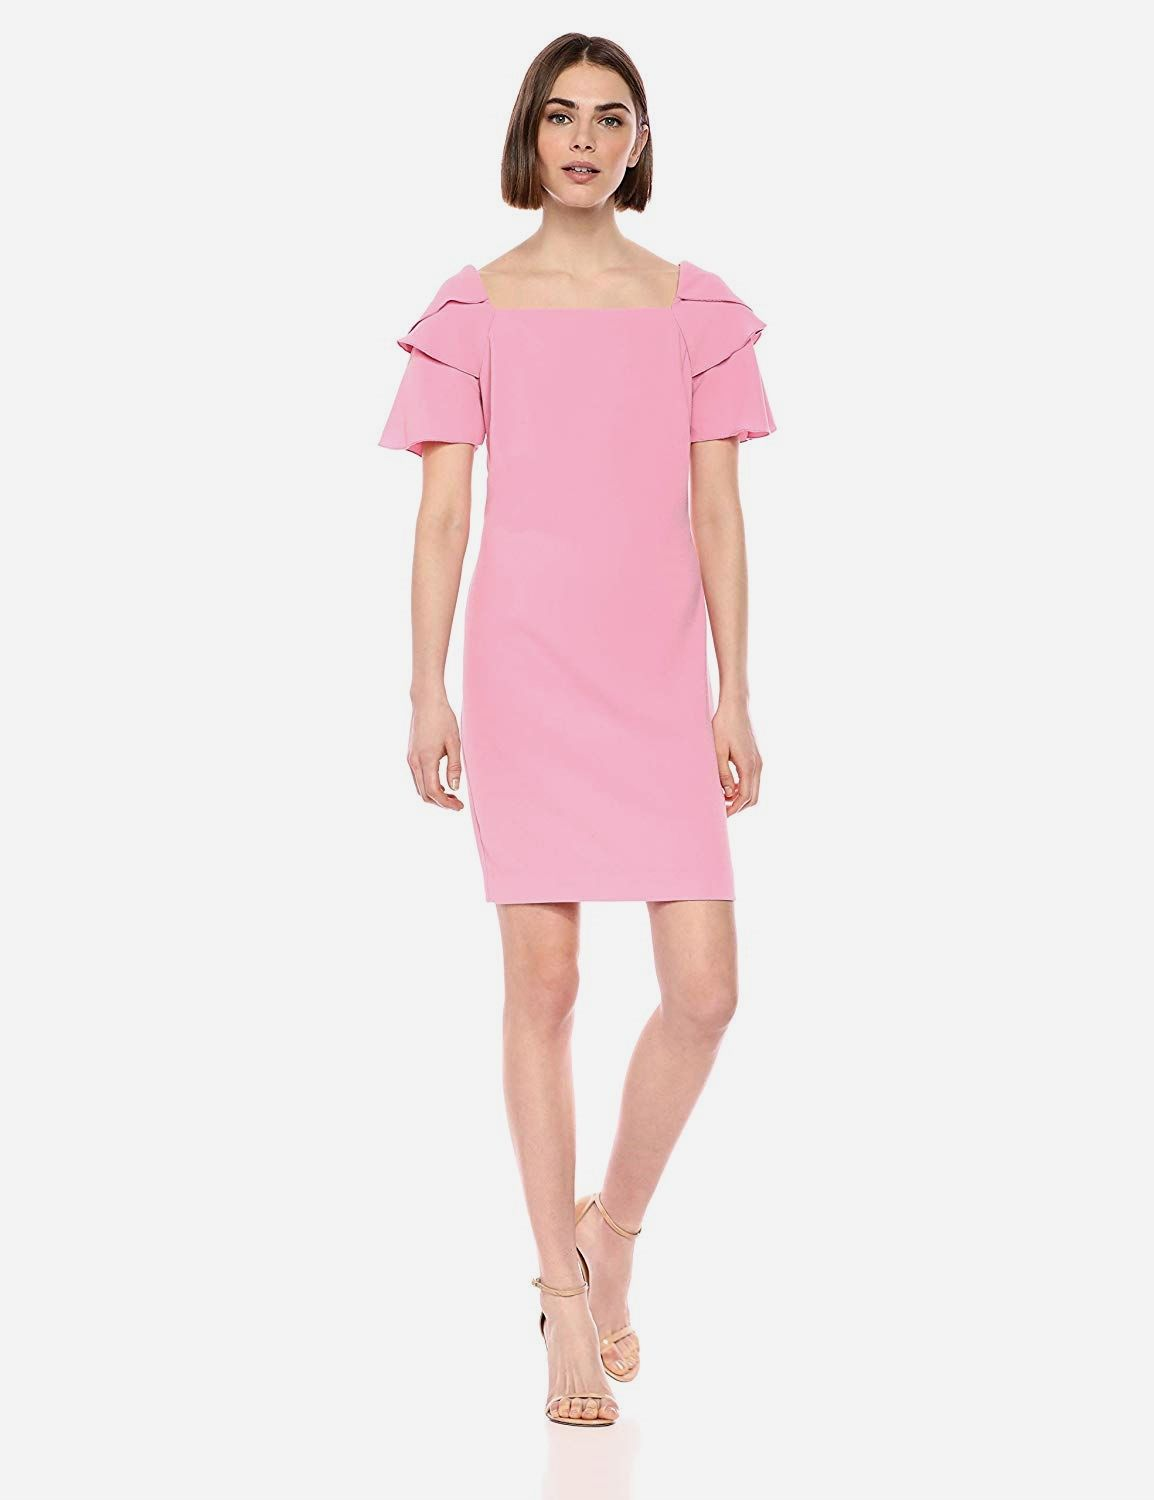 Wander Is A Short Sleeve Shift Dress Made Up In Trina Turk S Classic Crepe Casual Dresses Short Sleeve Dresses Casual Dresses For Women [ 1500 x 1154 Pixel ]